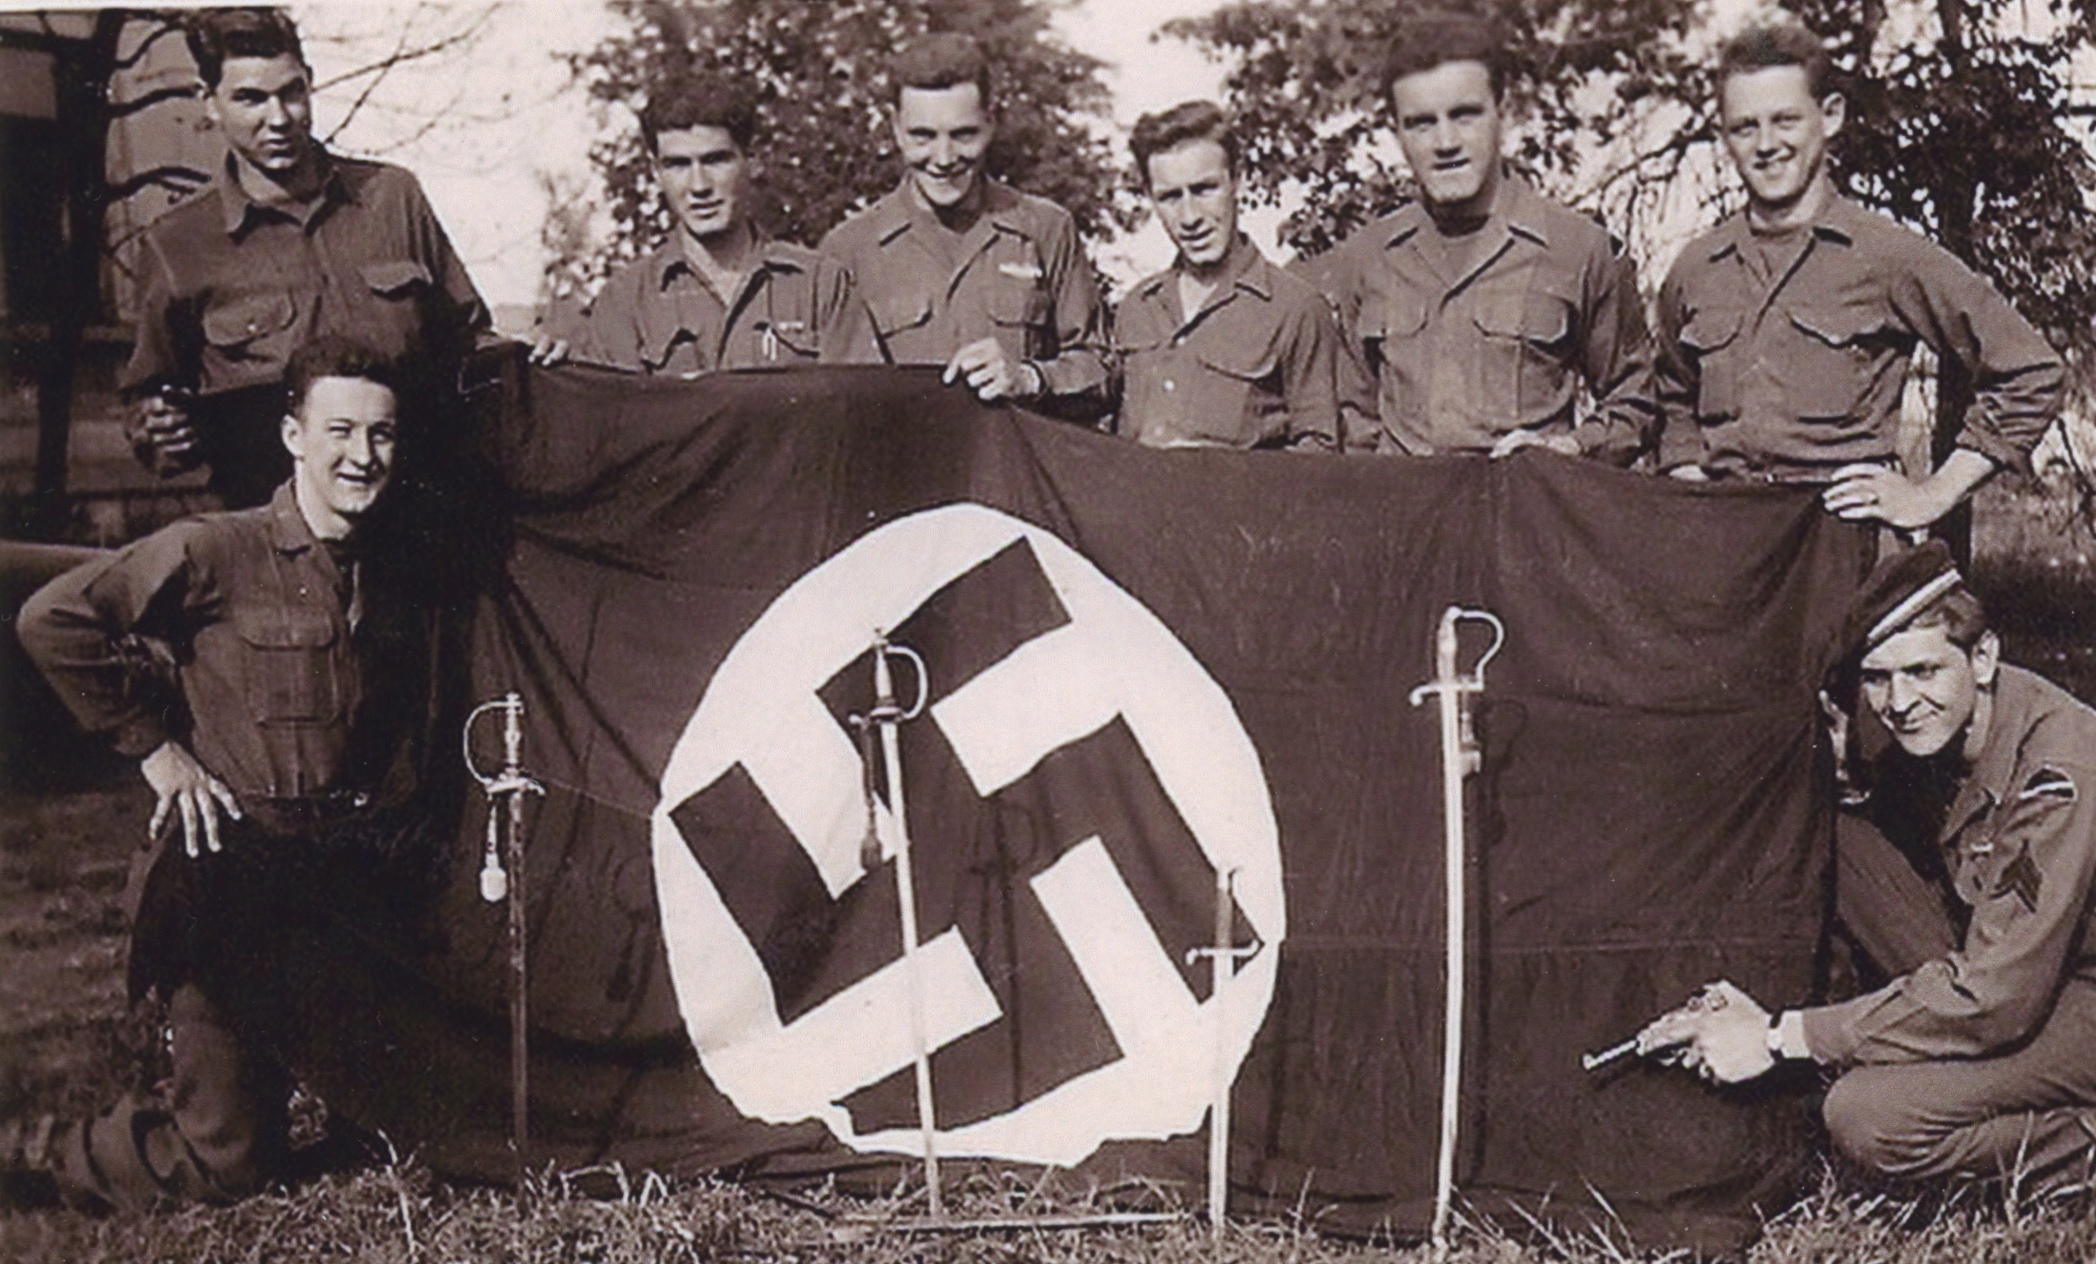 Mr. Zemont far right, kneeling with German Luger. May, 1945, Waldeck, Germany.